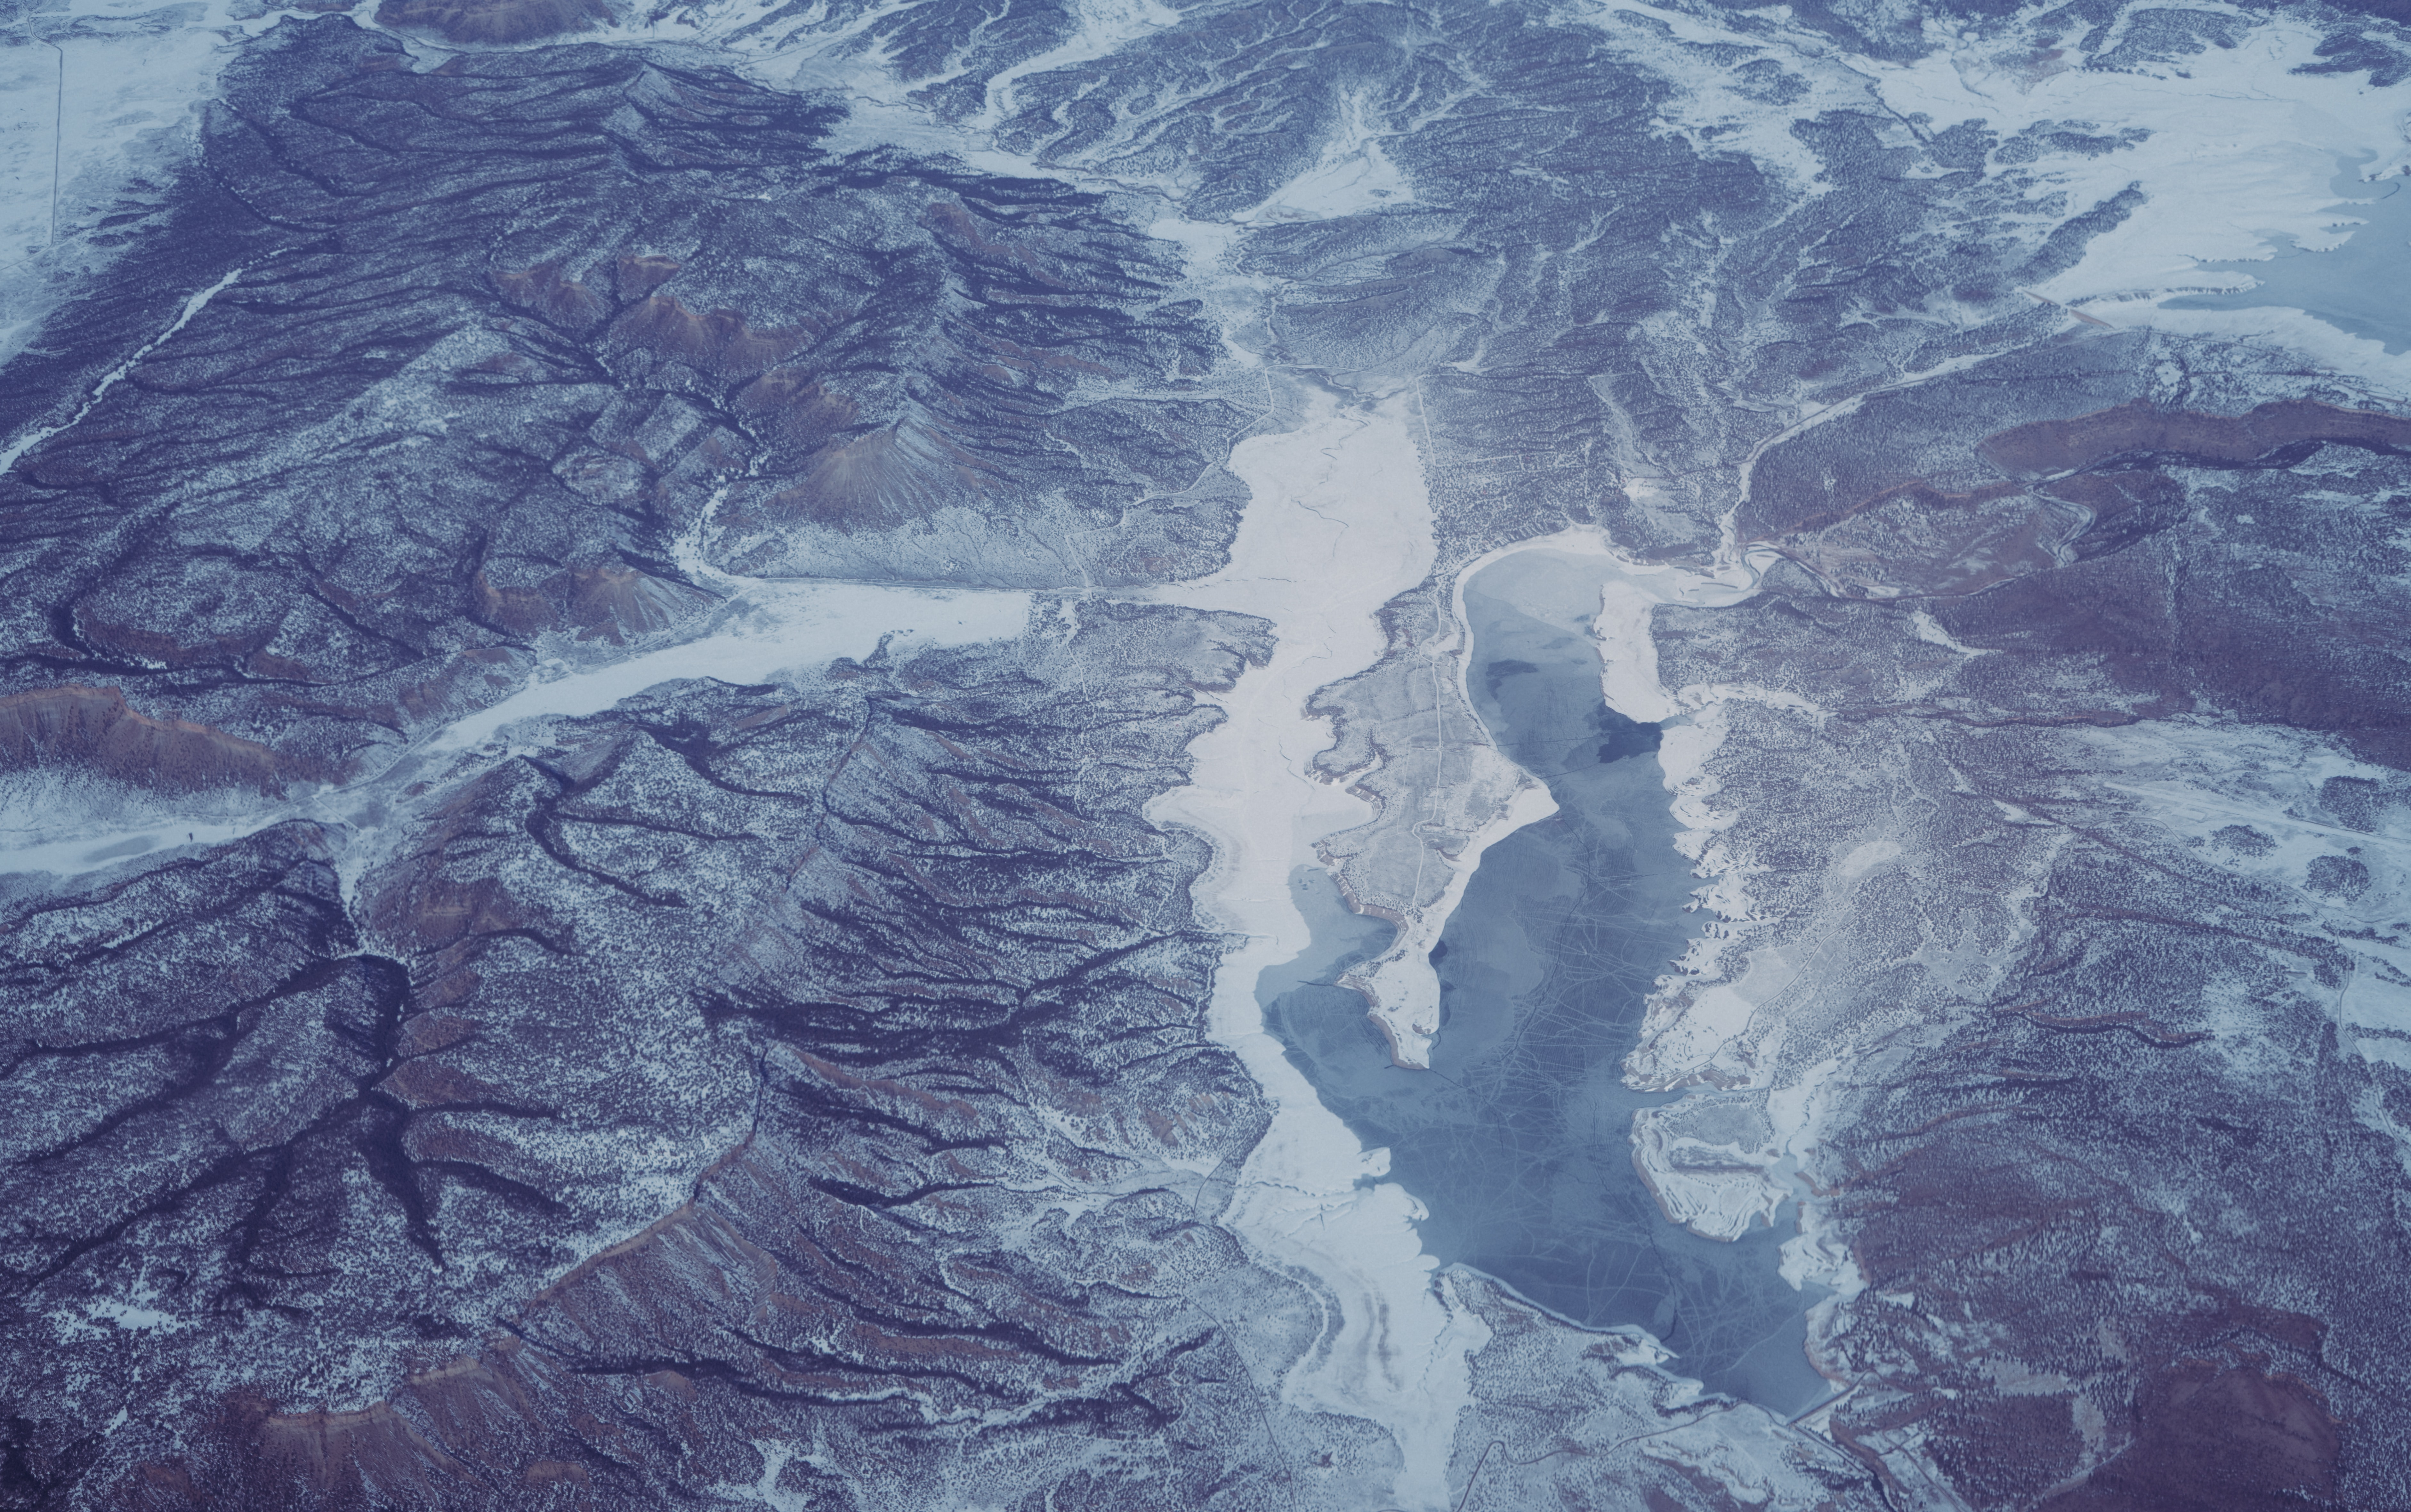 aerial photography of snow-covered mountain